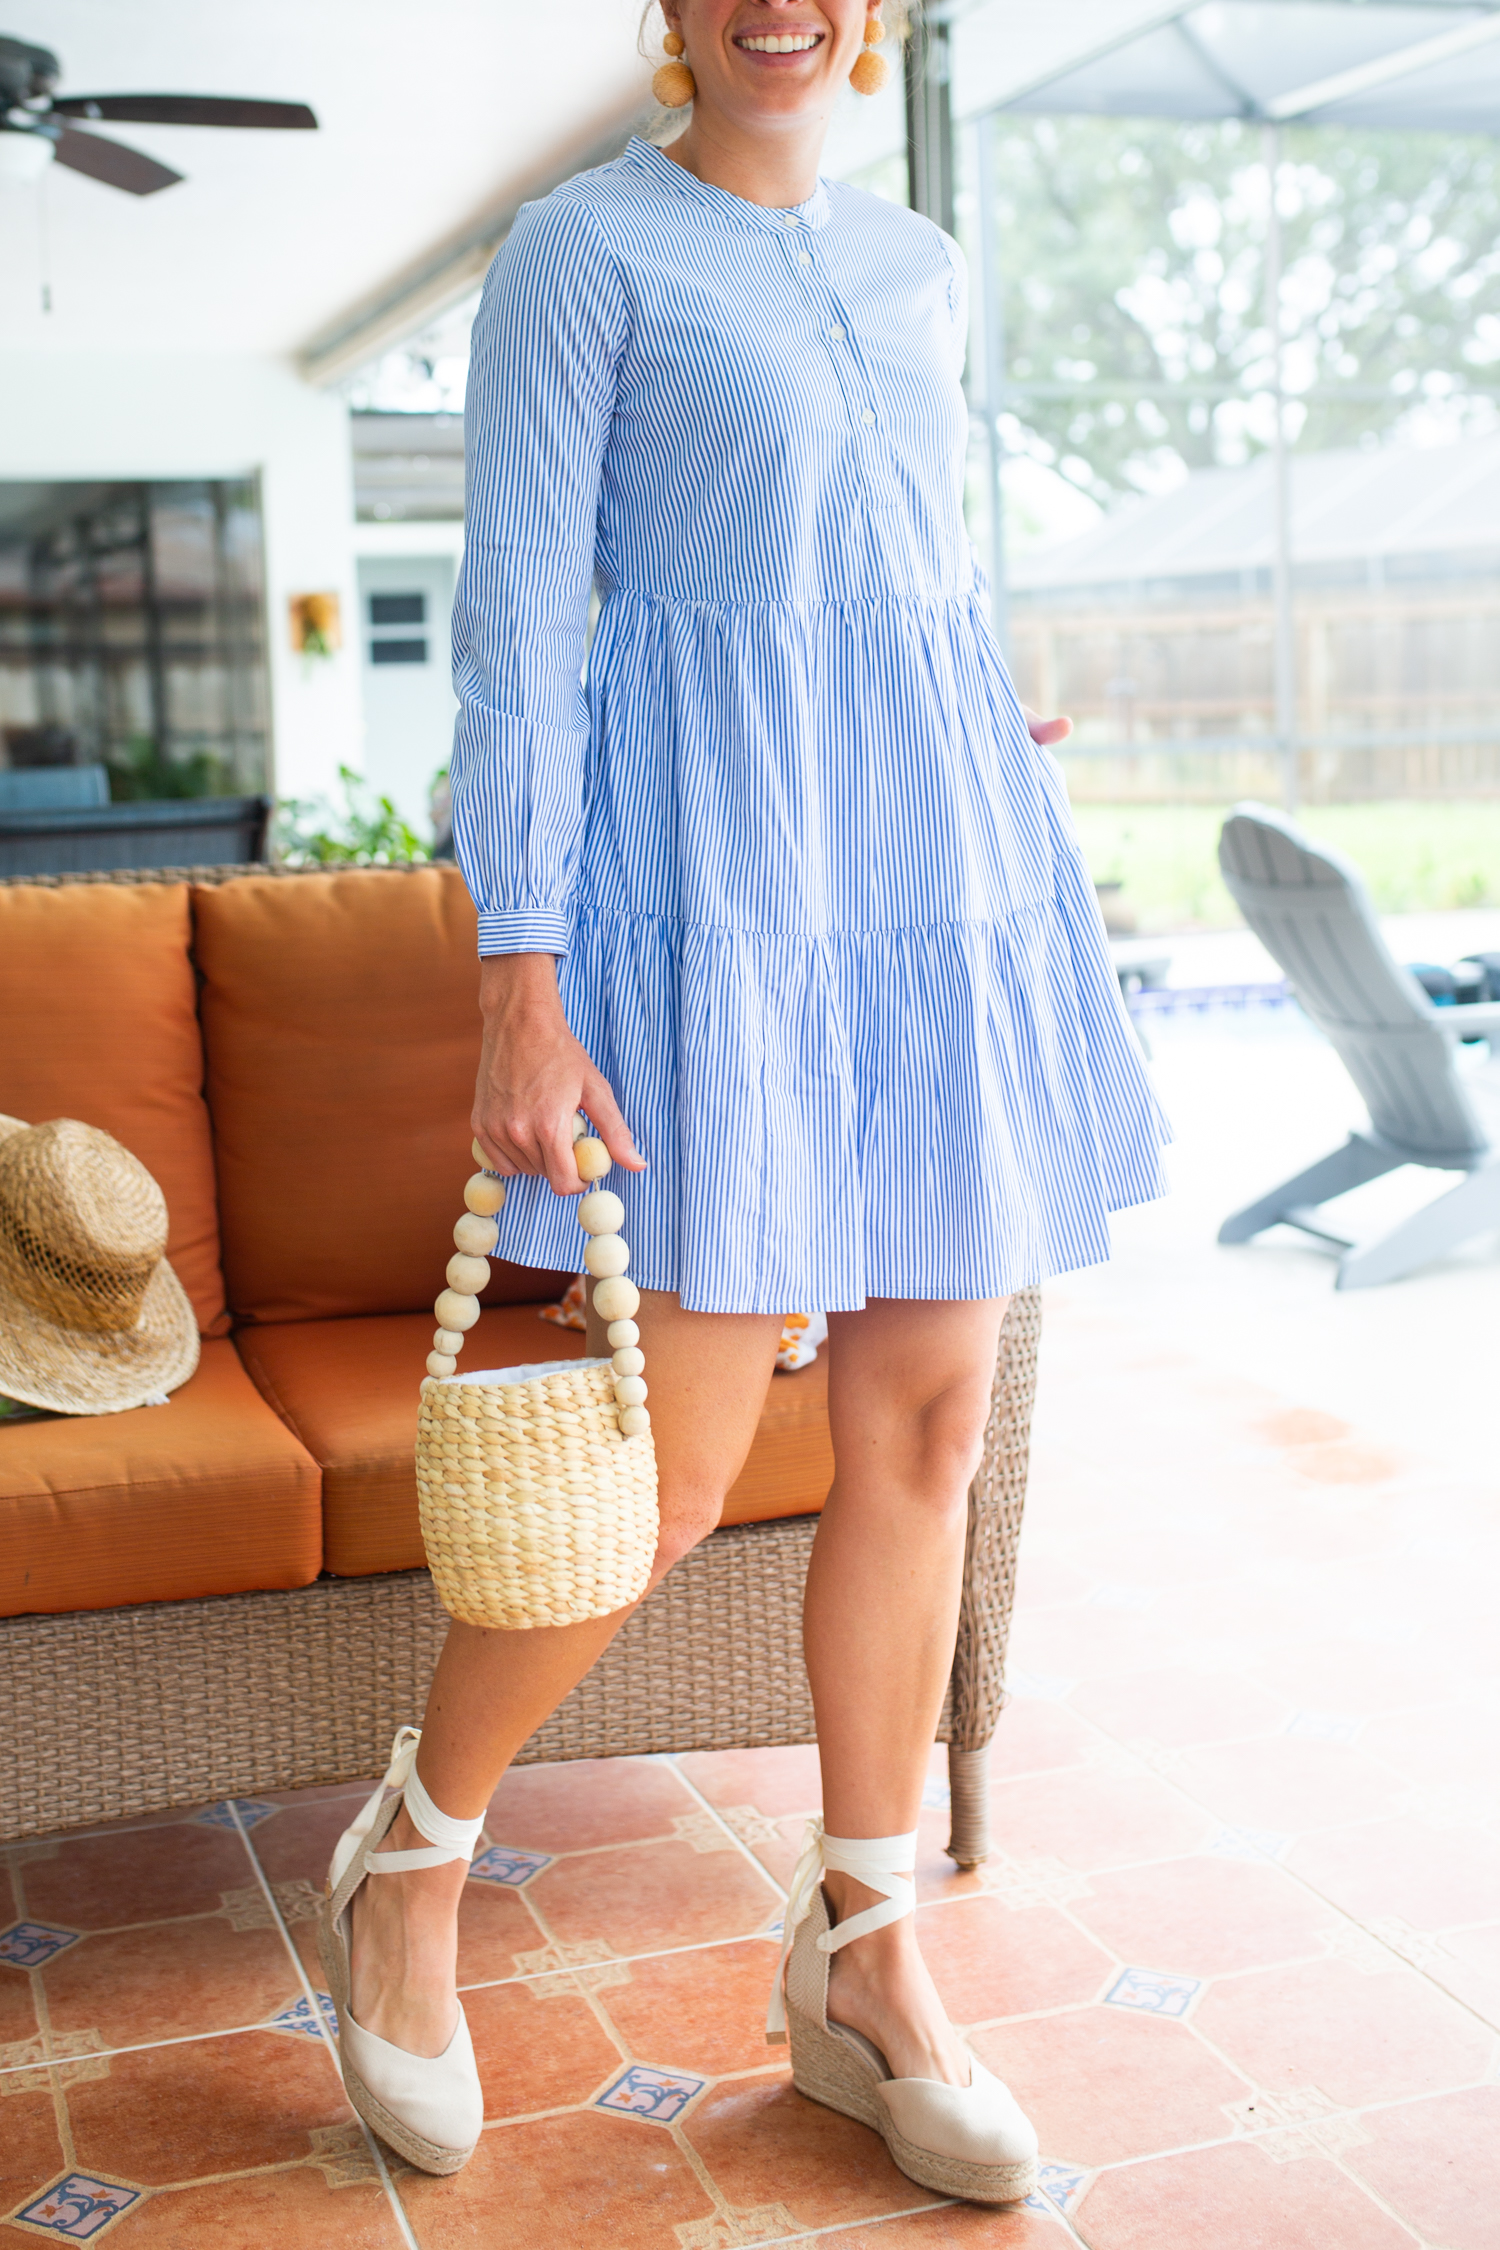 J.Crew Factory Babydoll Dress / Fall Dress Ideas / Fall Outfit Inspiration / Preppy Outfit / Blue and White Stripes / Bow Hair Scrunchie - Sunshine Style, A Classic and Coastal Fashion and Lifestyle Blog by Katie